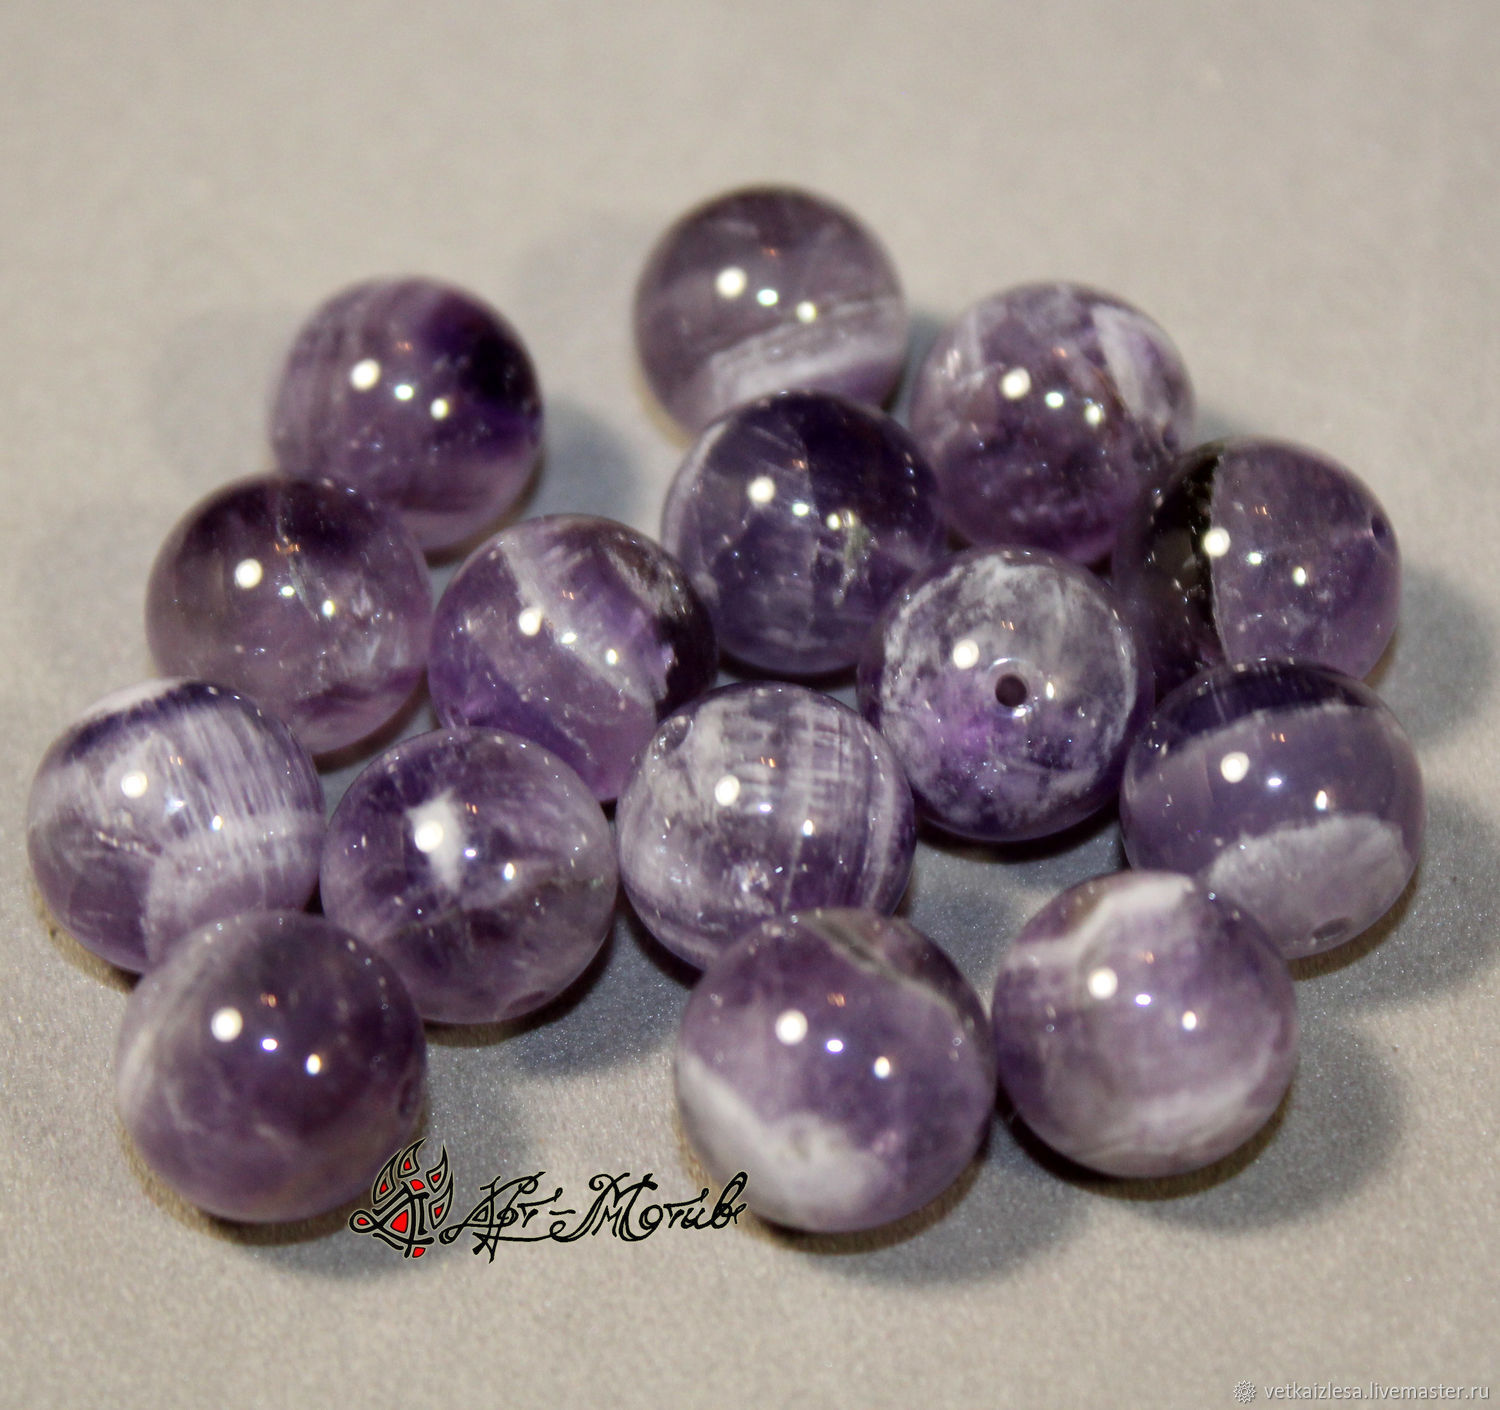 Amethyst beads 12mm (natural stone)